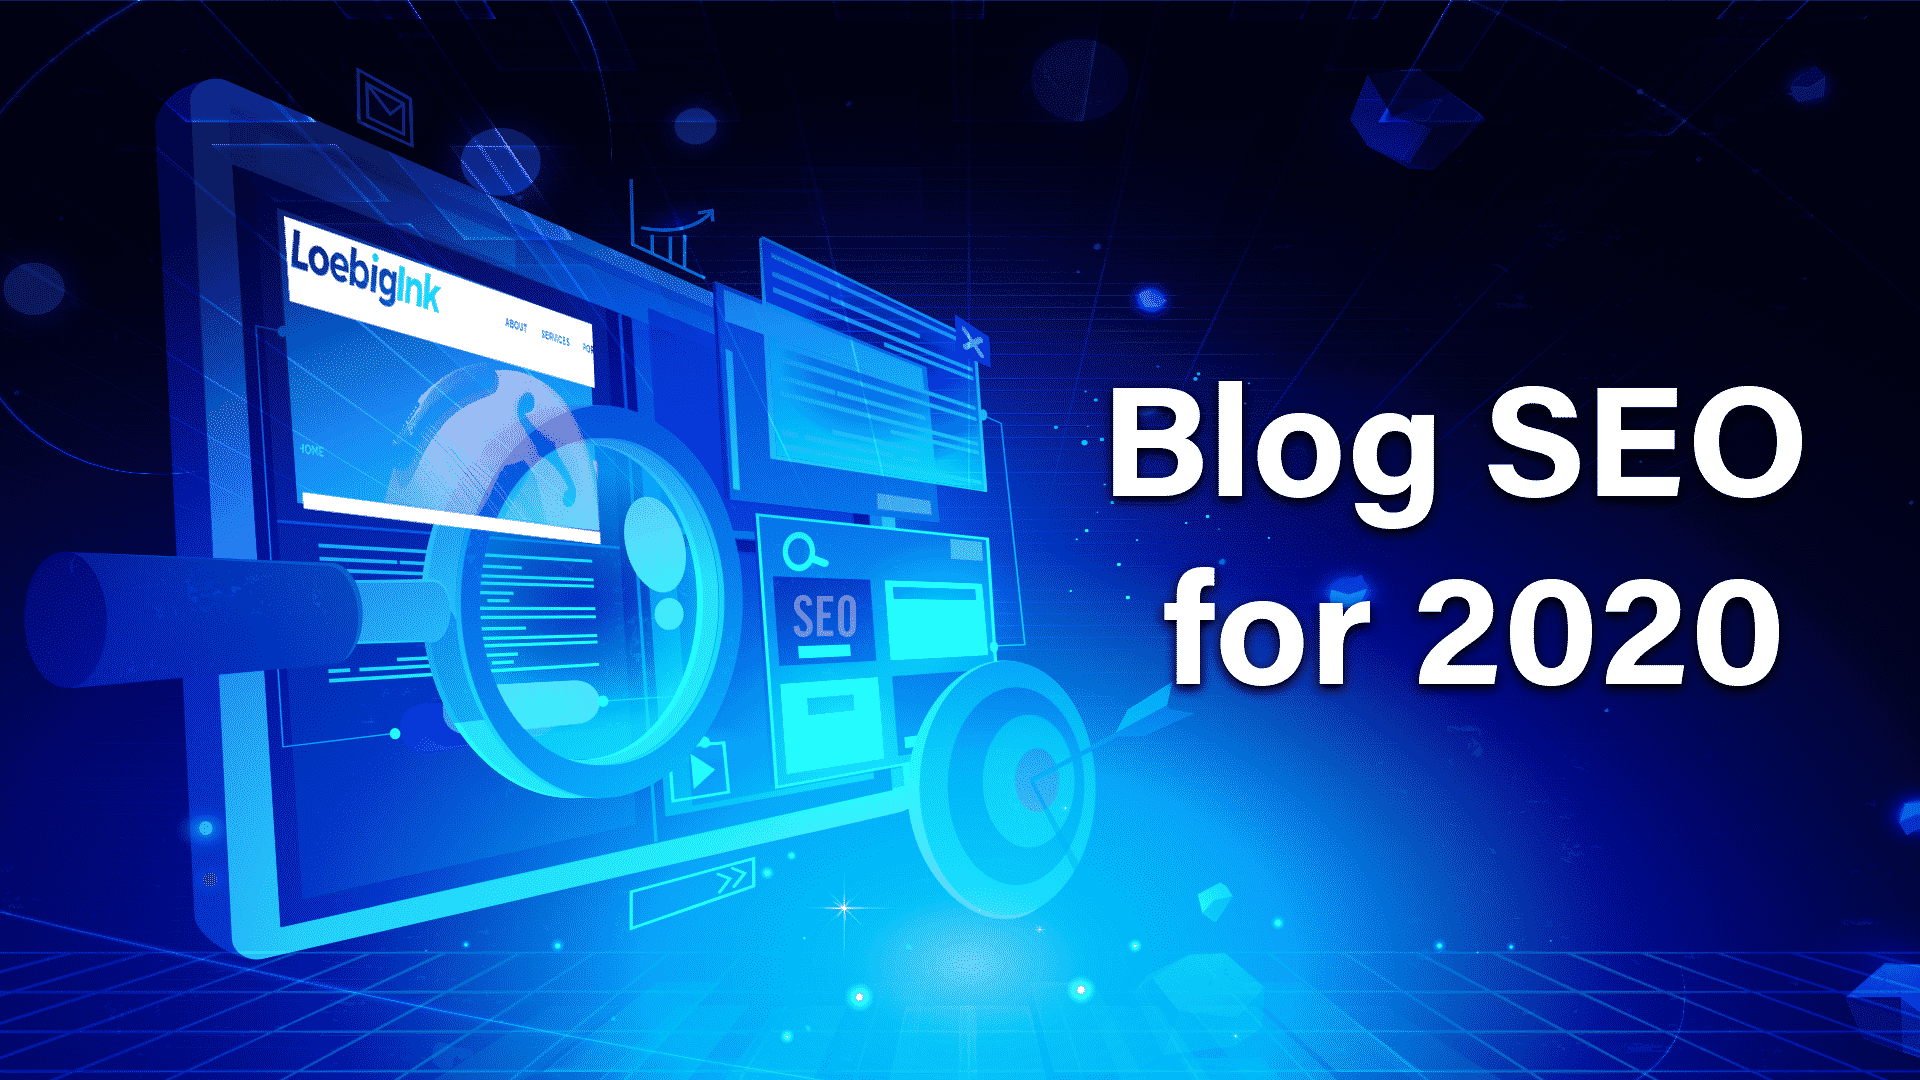 Blog SEO for 2020